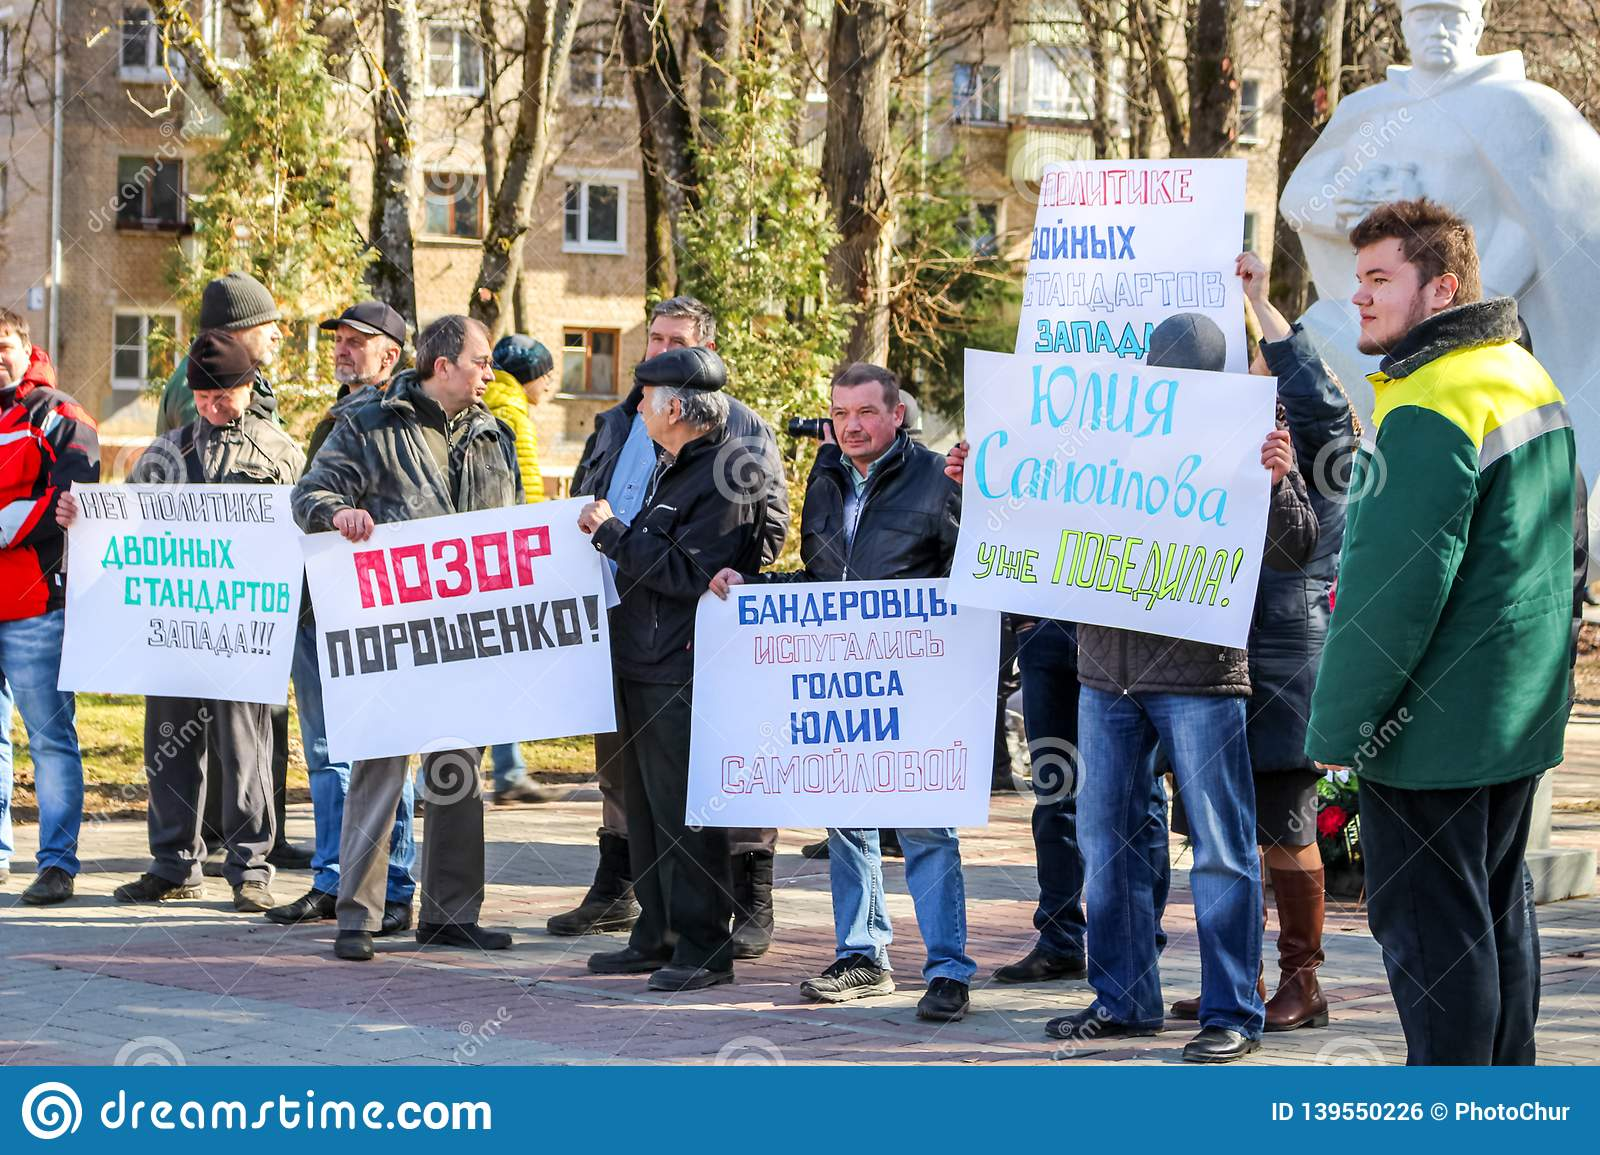 OBNINSK, RUSSIA - MARCH 26, 2017: Picket in support of Yuliya Samoylova, representative of Russia at the Eurovision-2017 contest